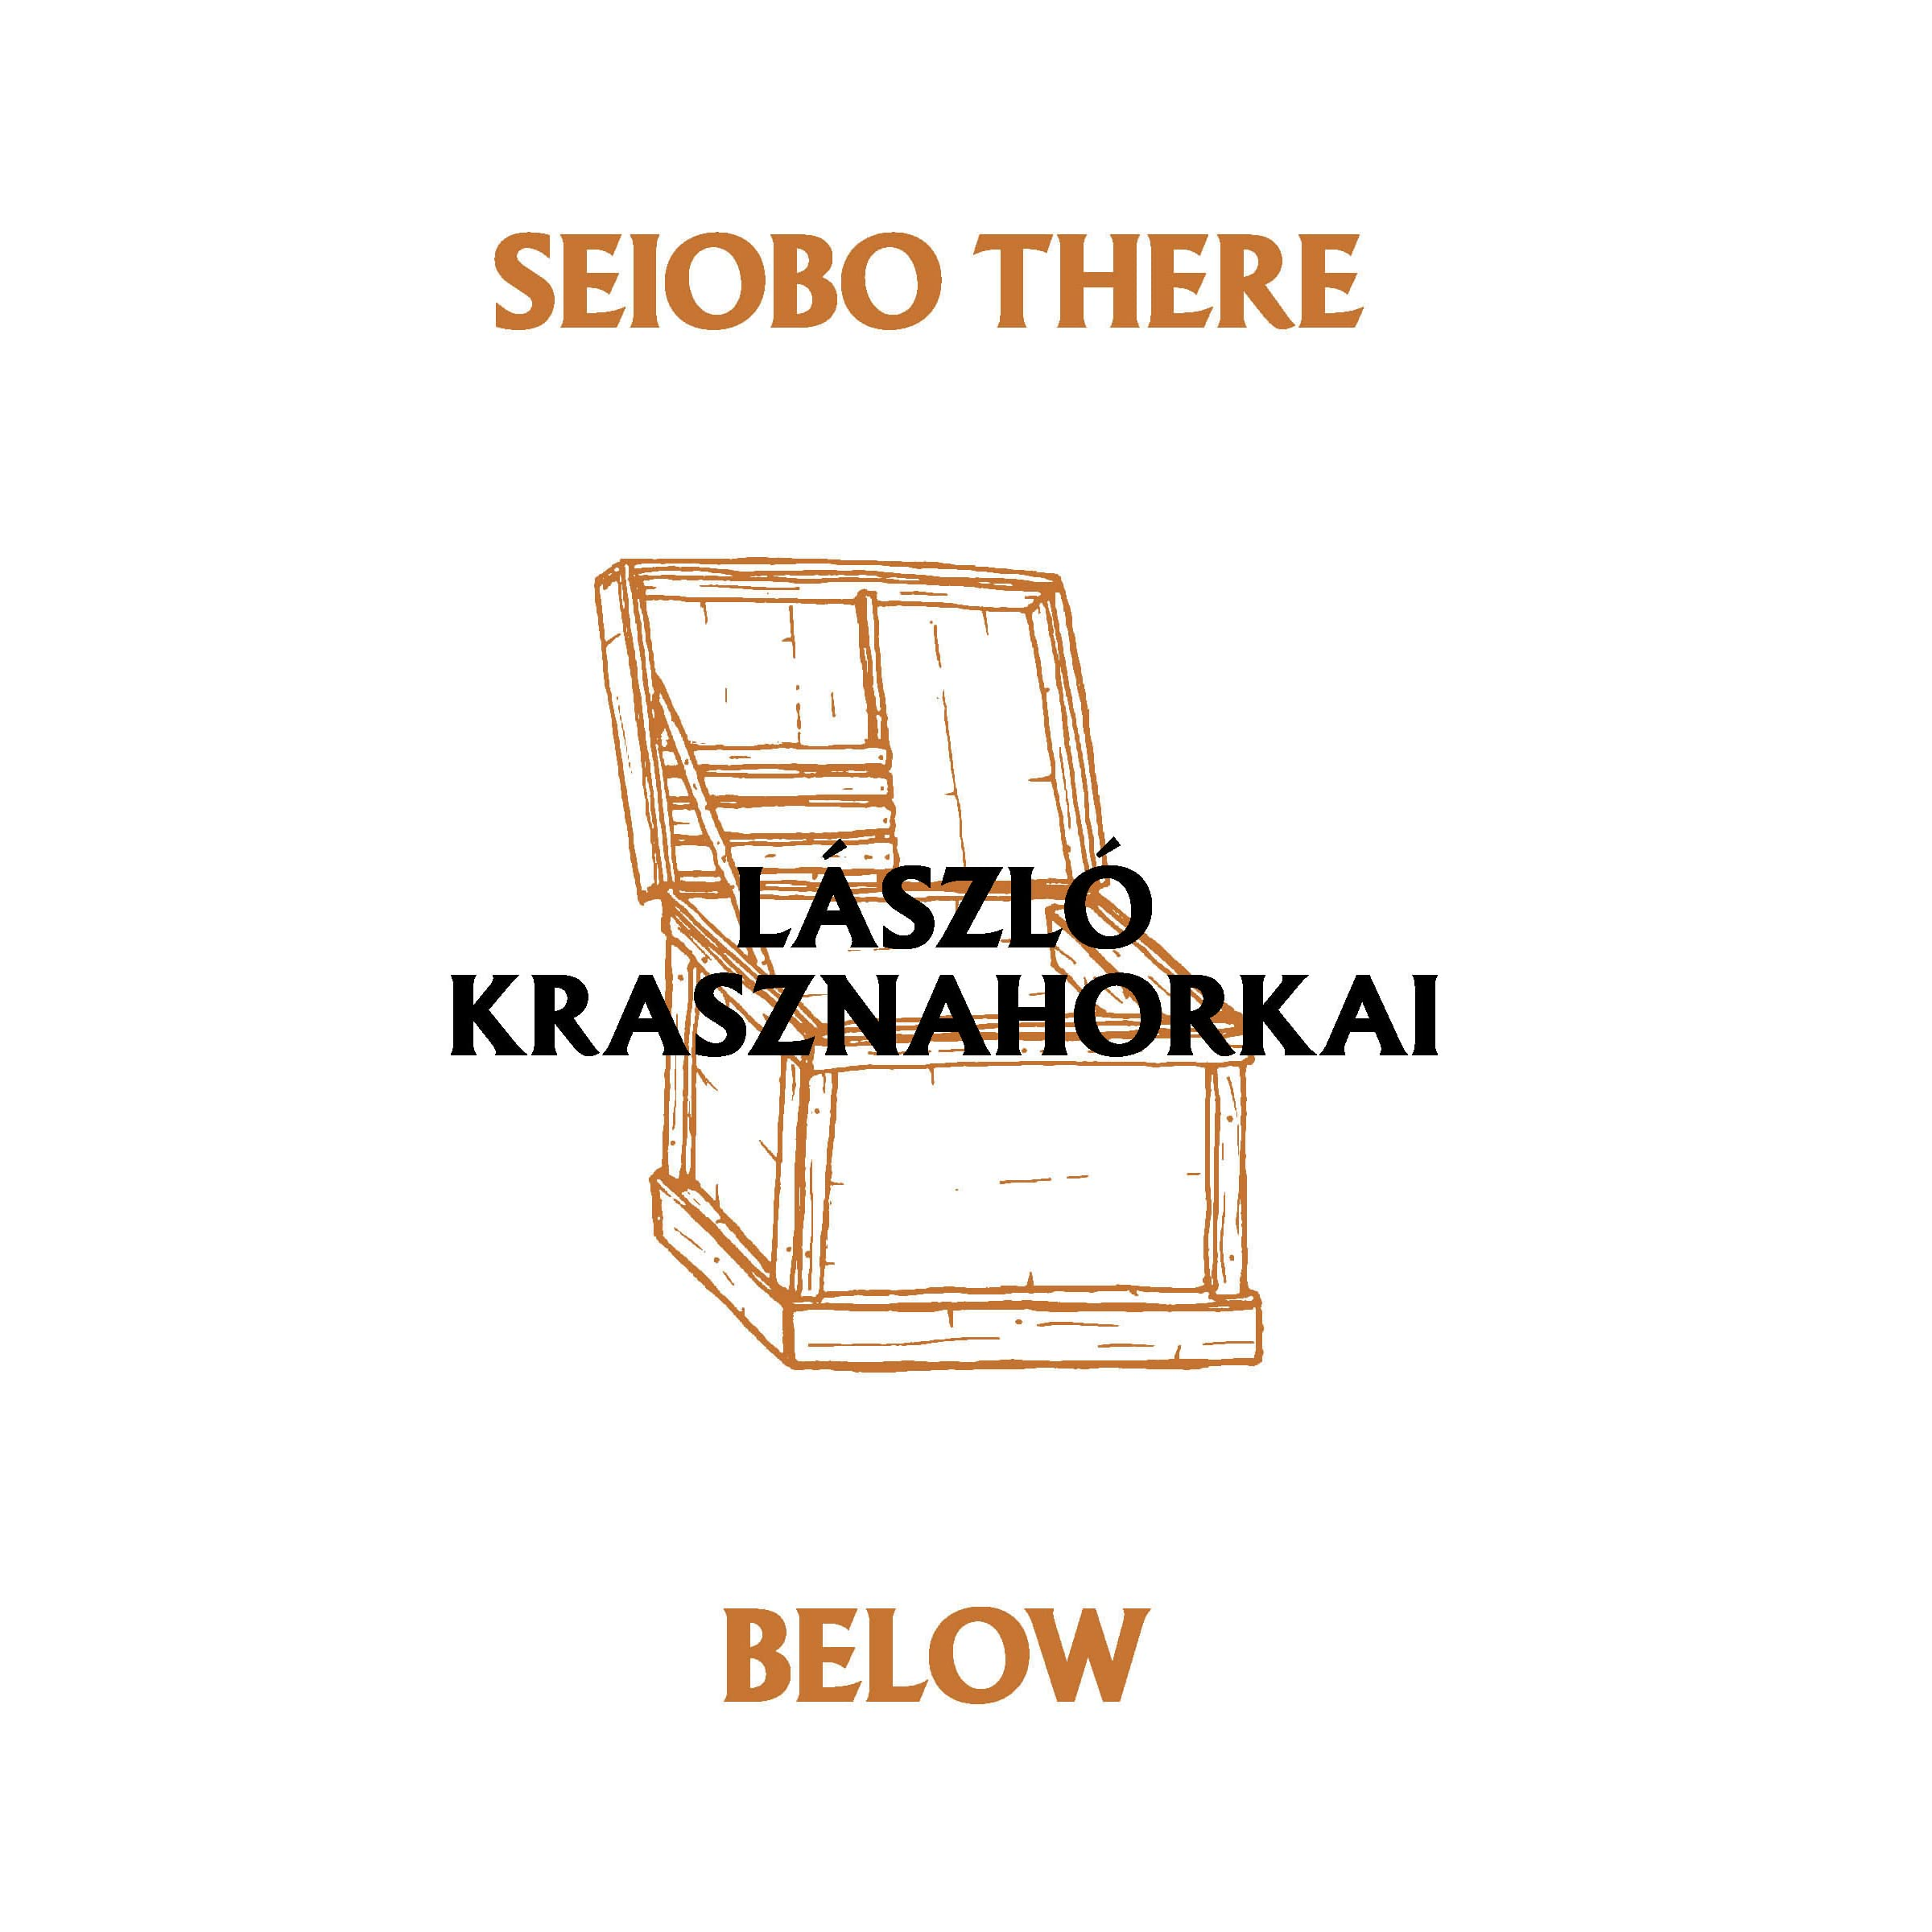 Seiobo There Below By L�szl� Krasznahorkai €� Reviews, Discussion,  Bookclubs, Lists